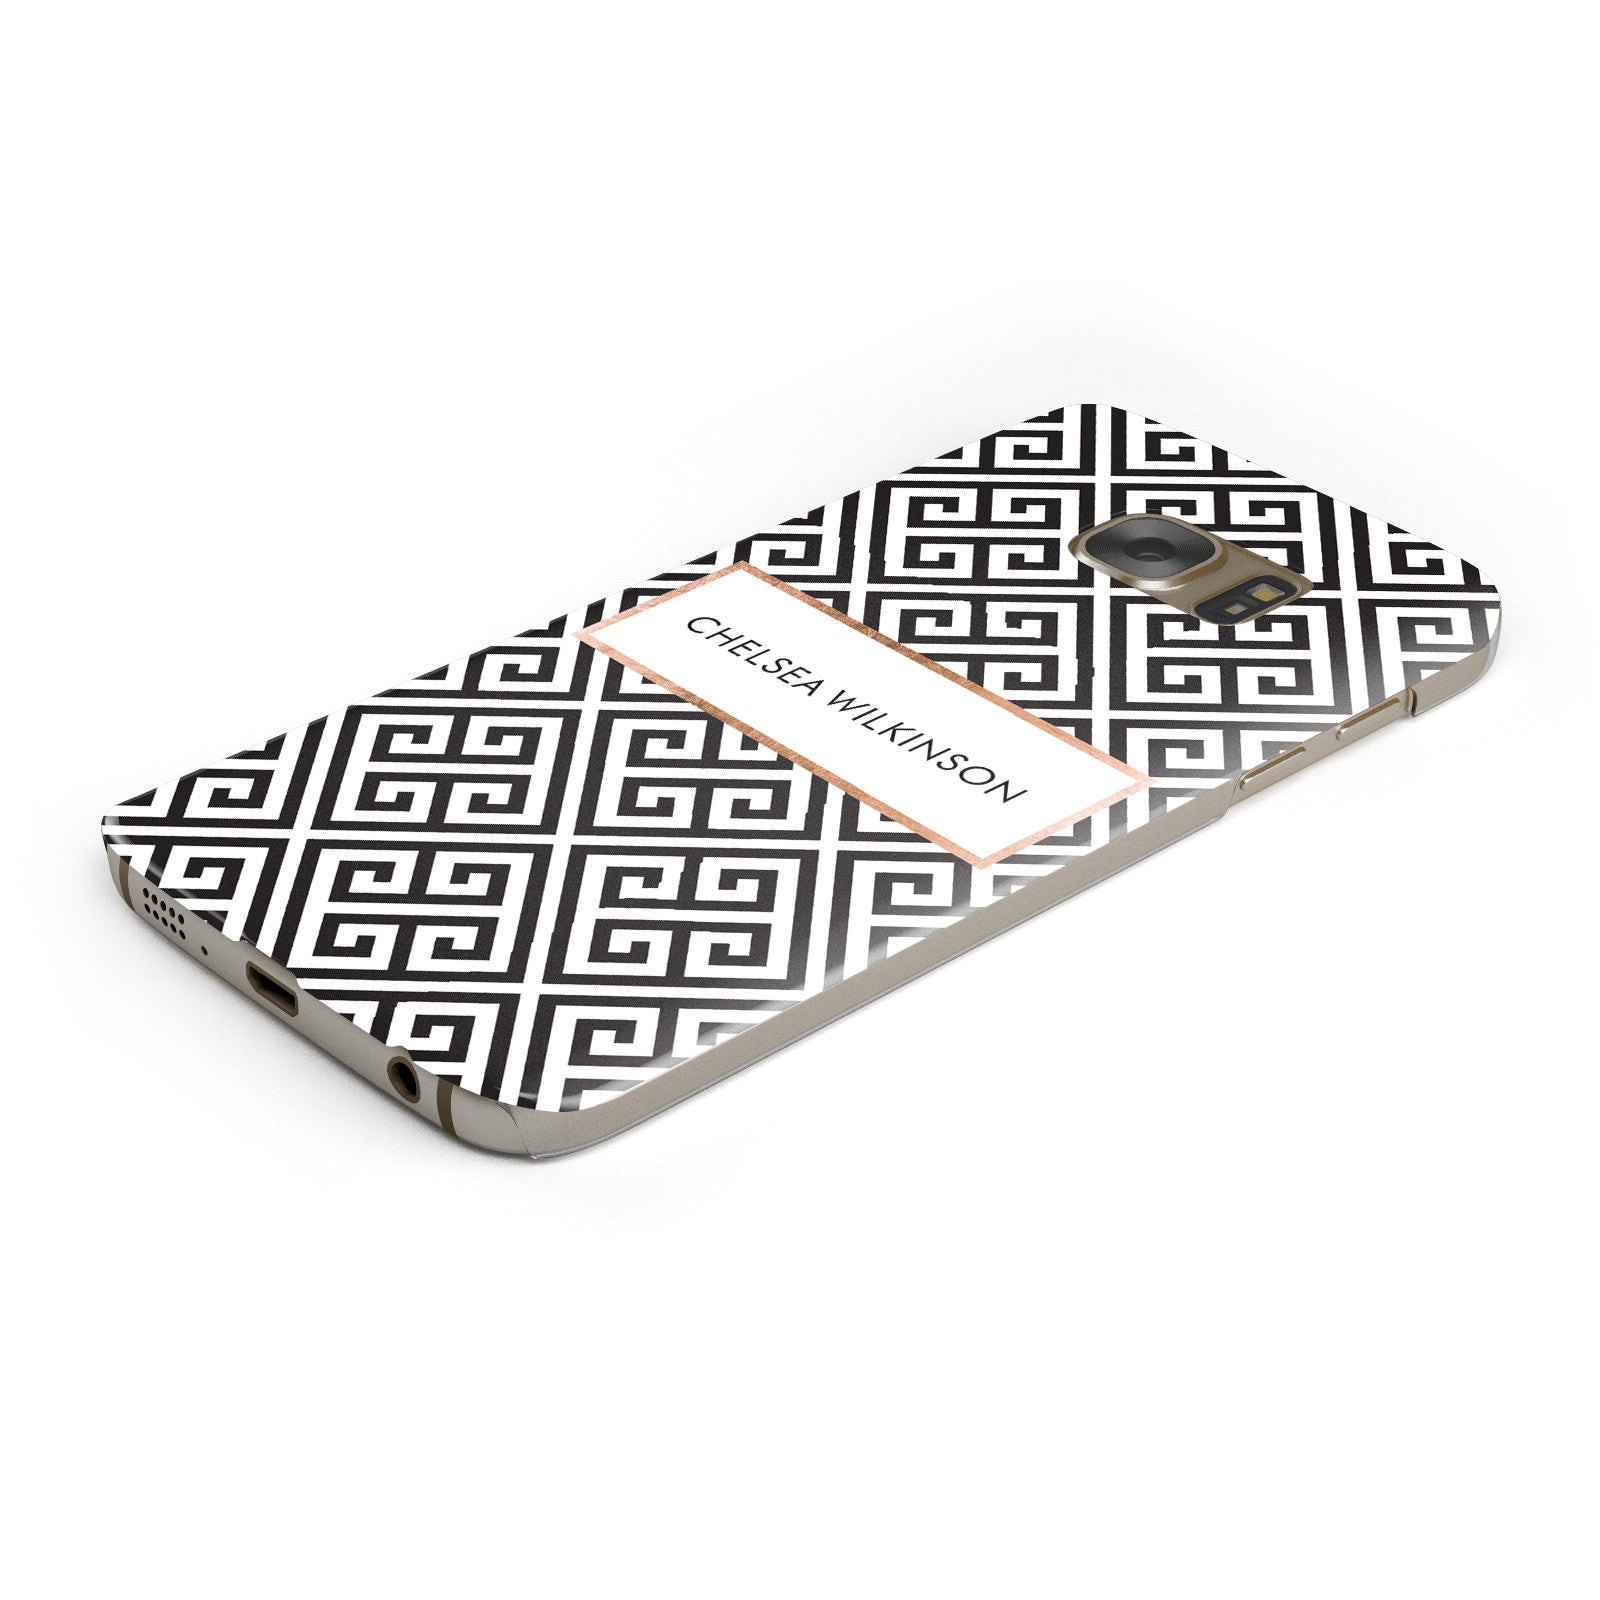 Personalised Black Pattern Name Or Initials Samsung Galaxy Case Bottom Cutout